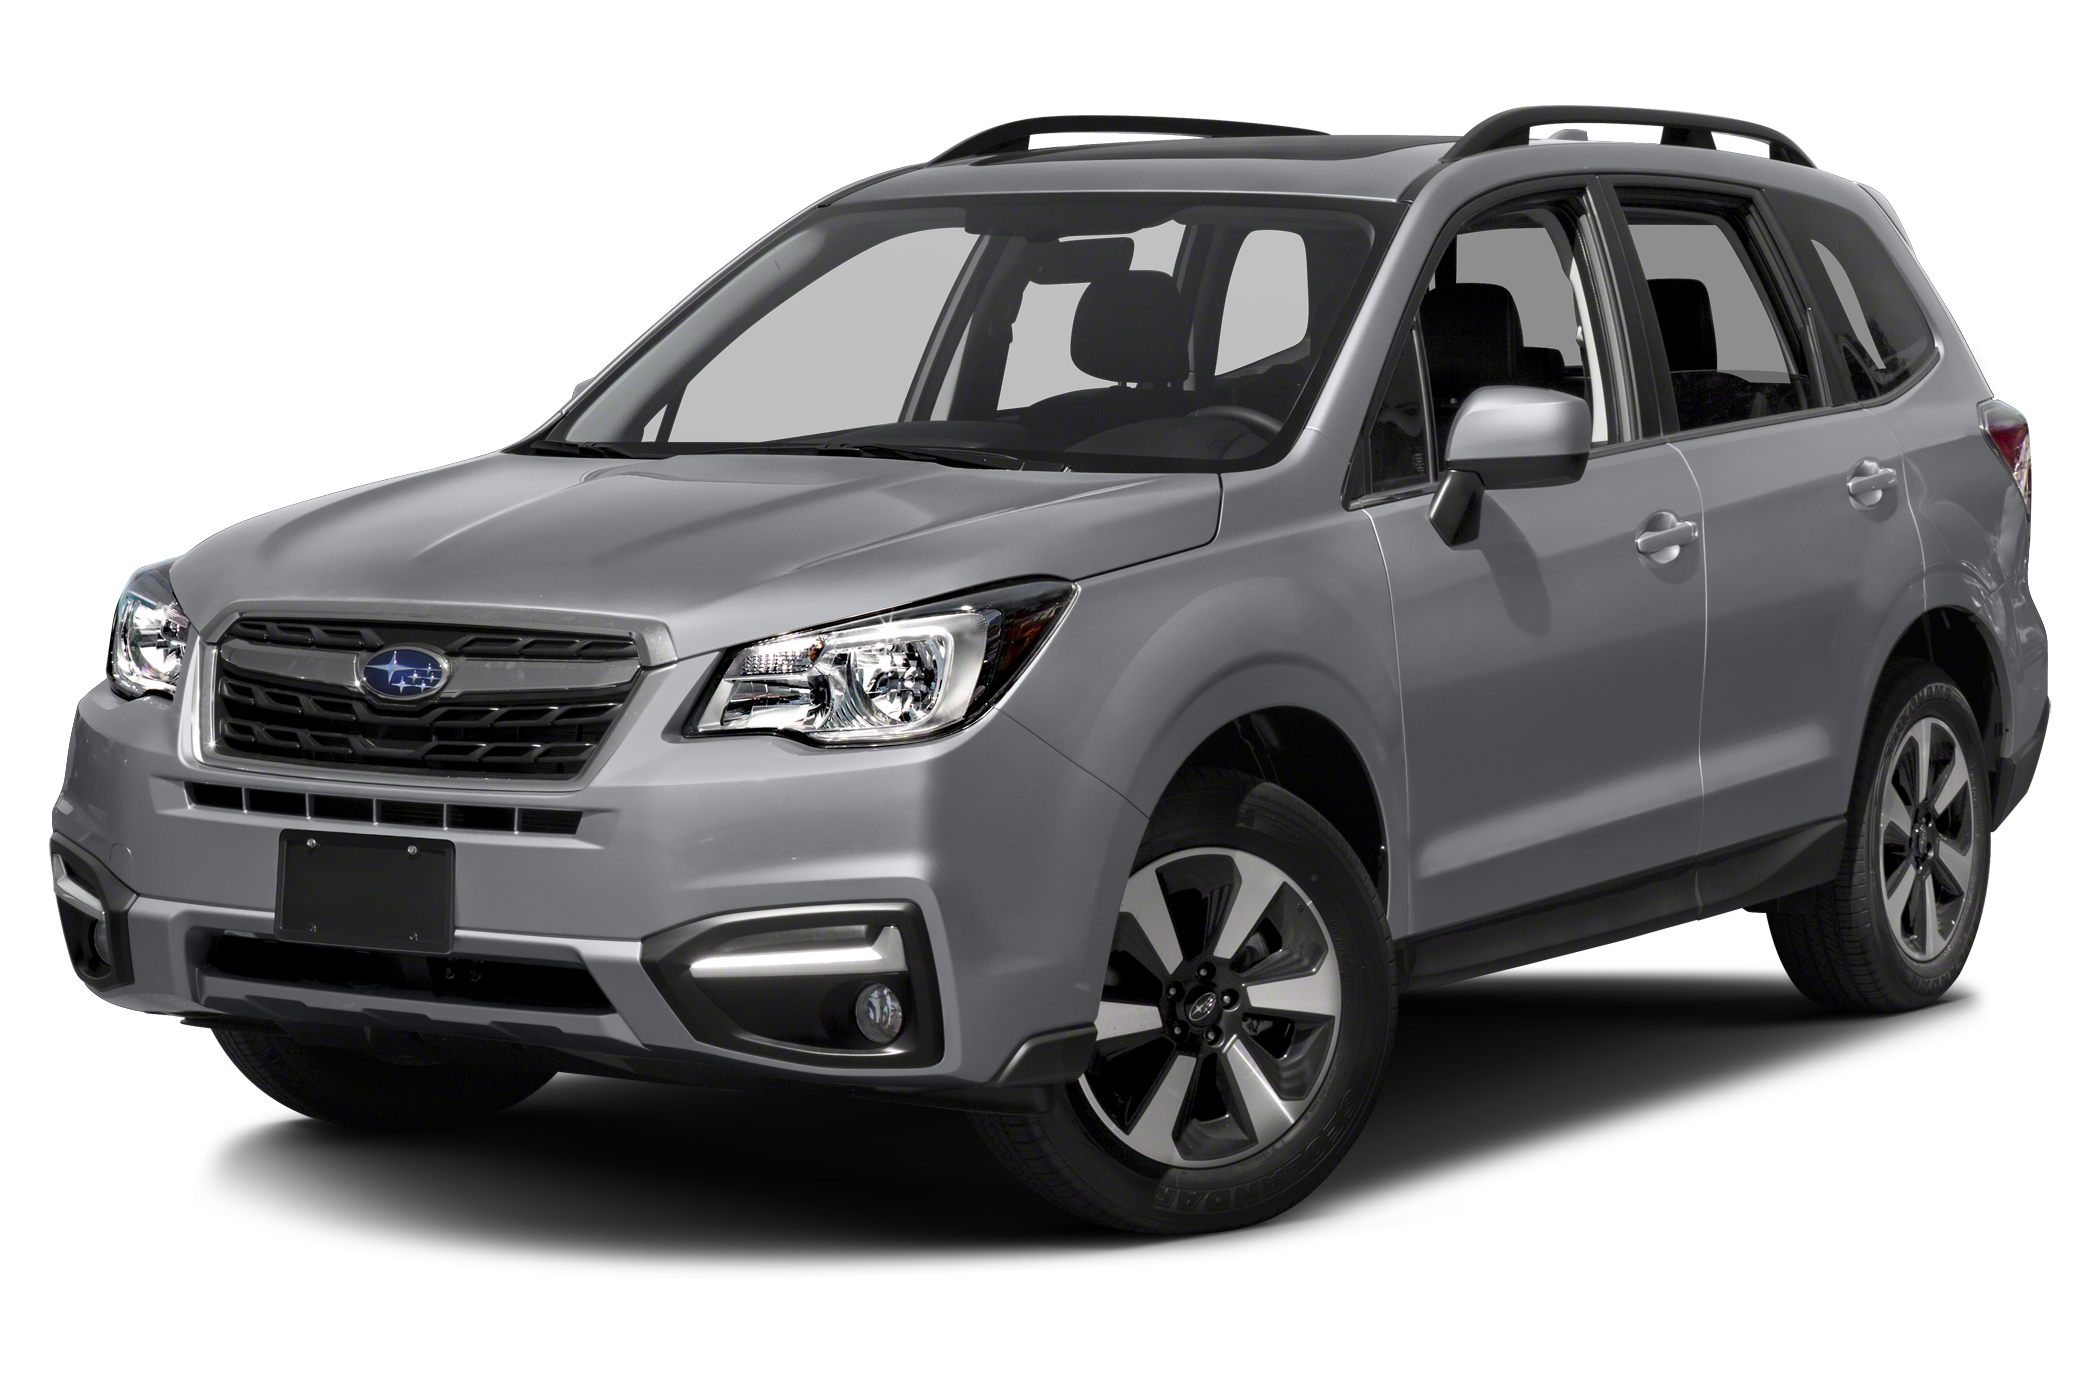 2018 Subaru Forester 2.5i Limited 4dr All-wheel Drive